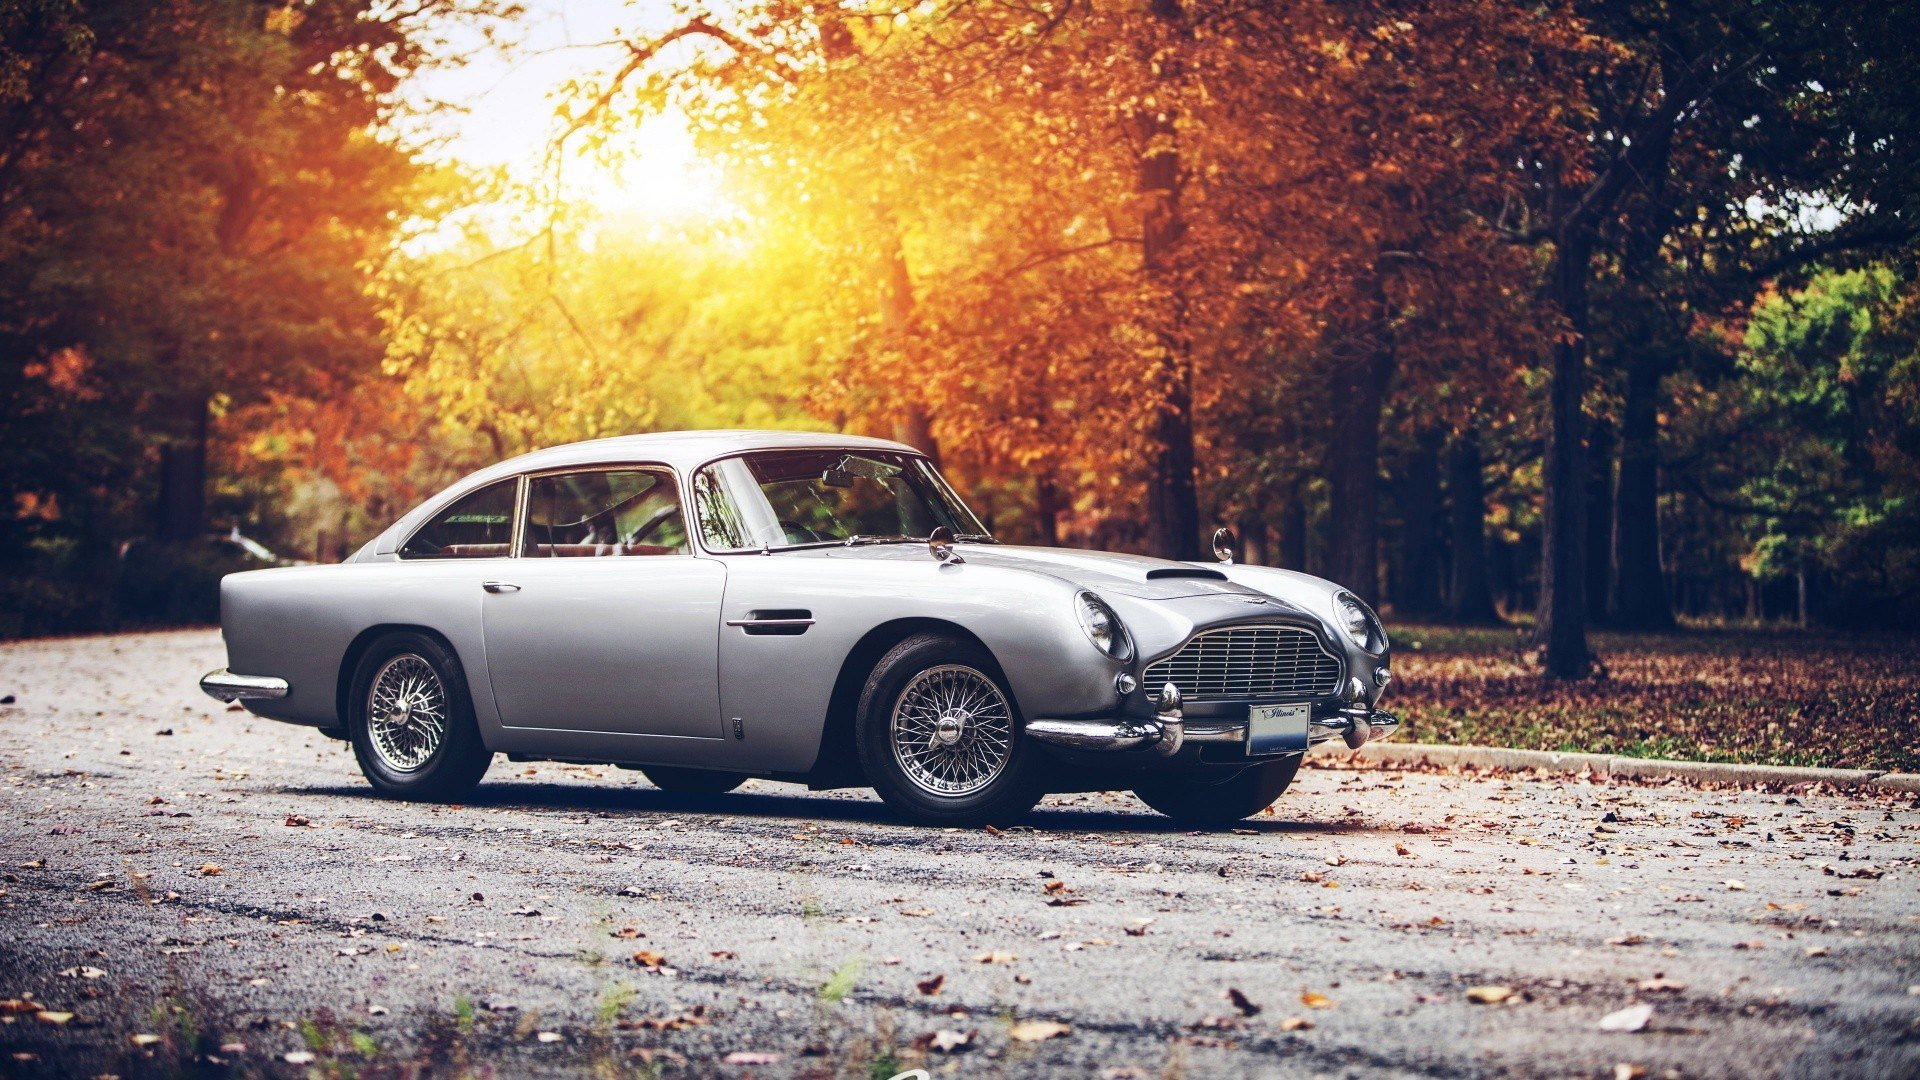 Latest Aston Martin Db5 Car James Bond Bond Cars Wallpapers Hd Free Download